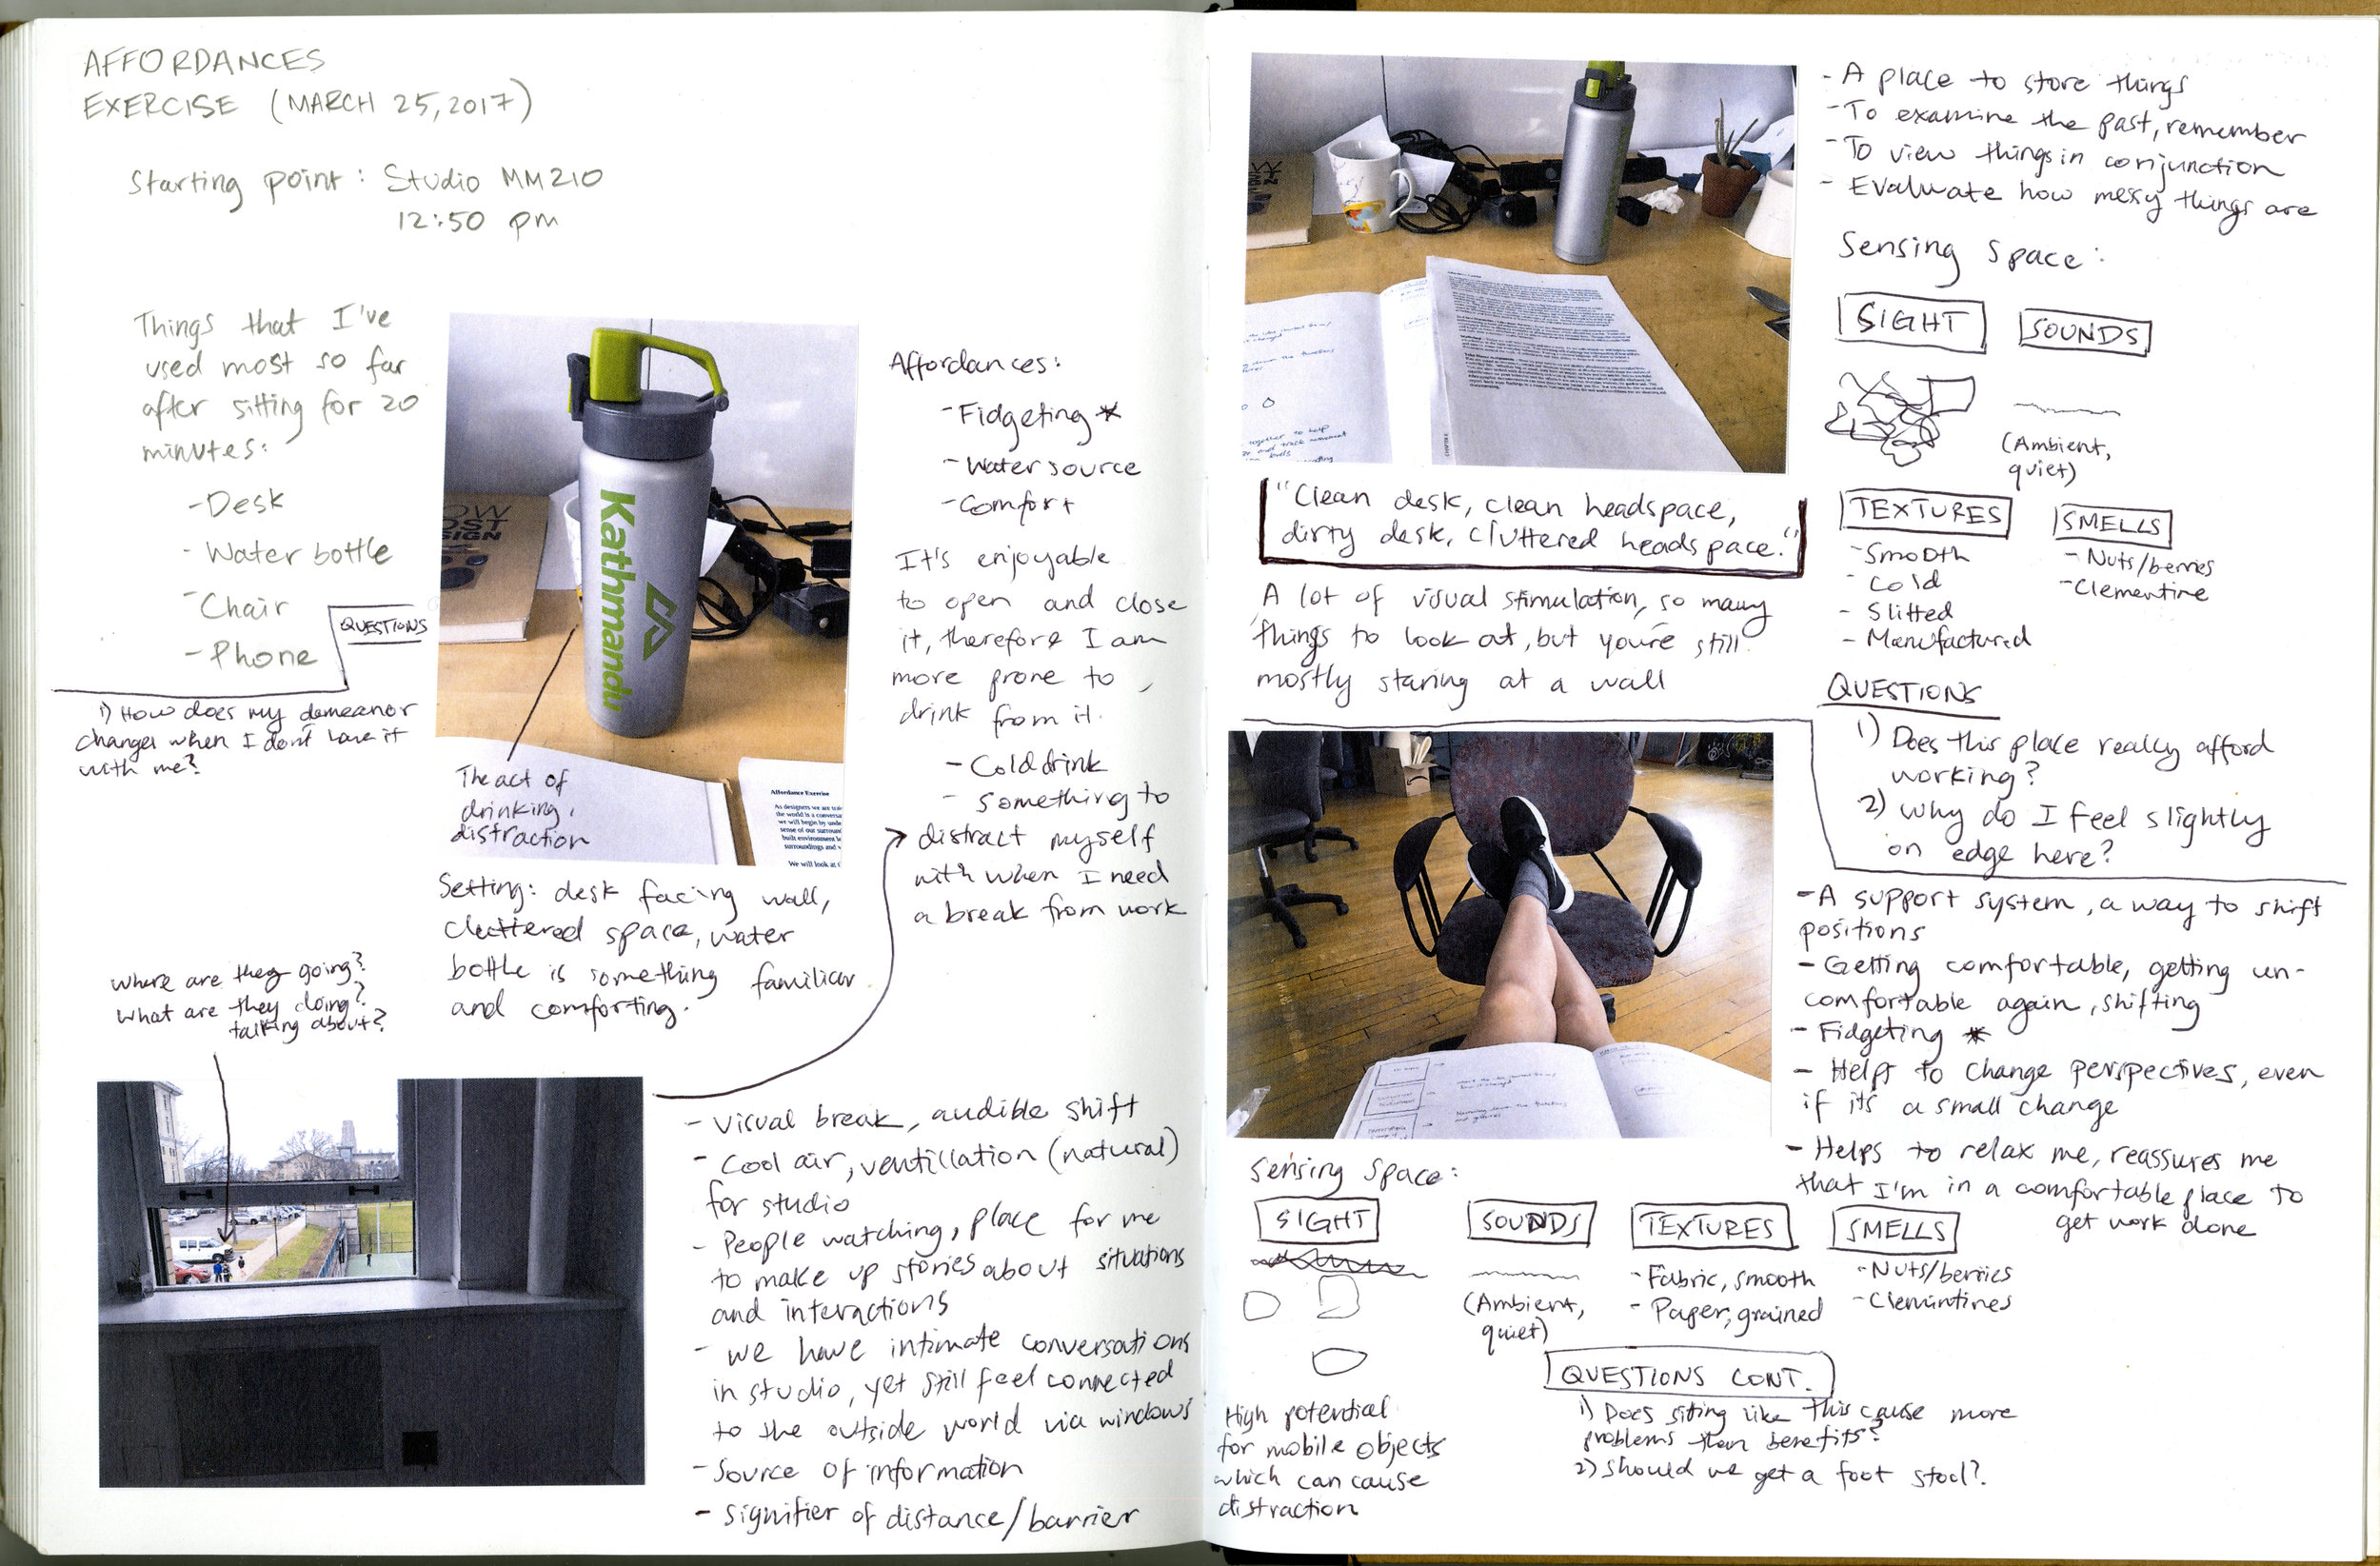 gilly_notes page 1-2.jpg